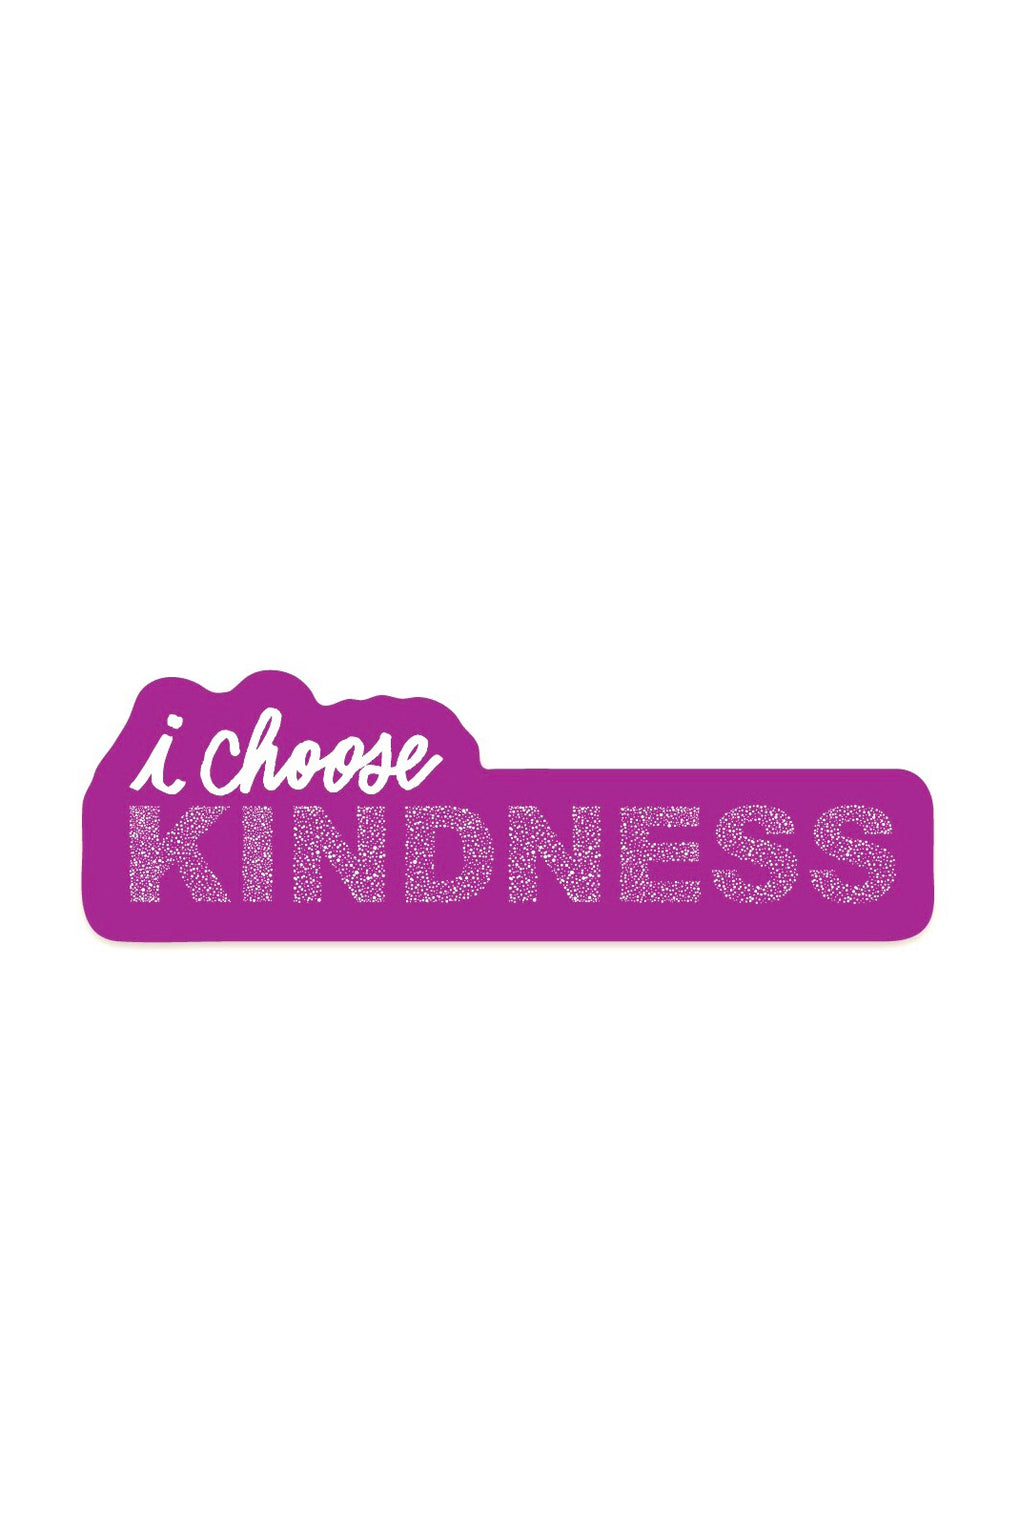 I Choose Kindness Sticker